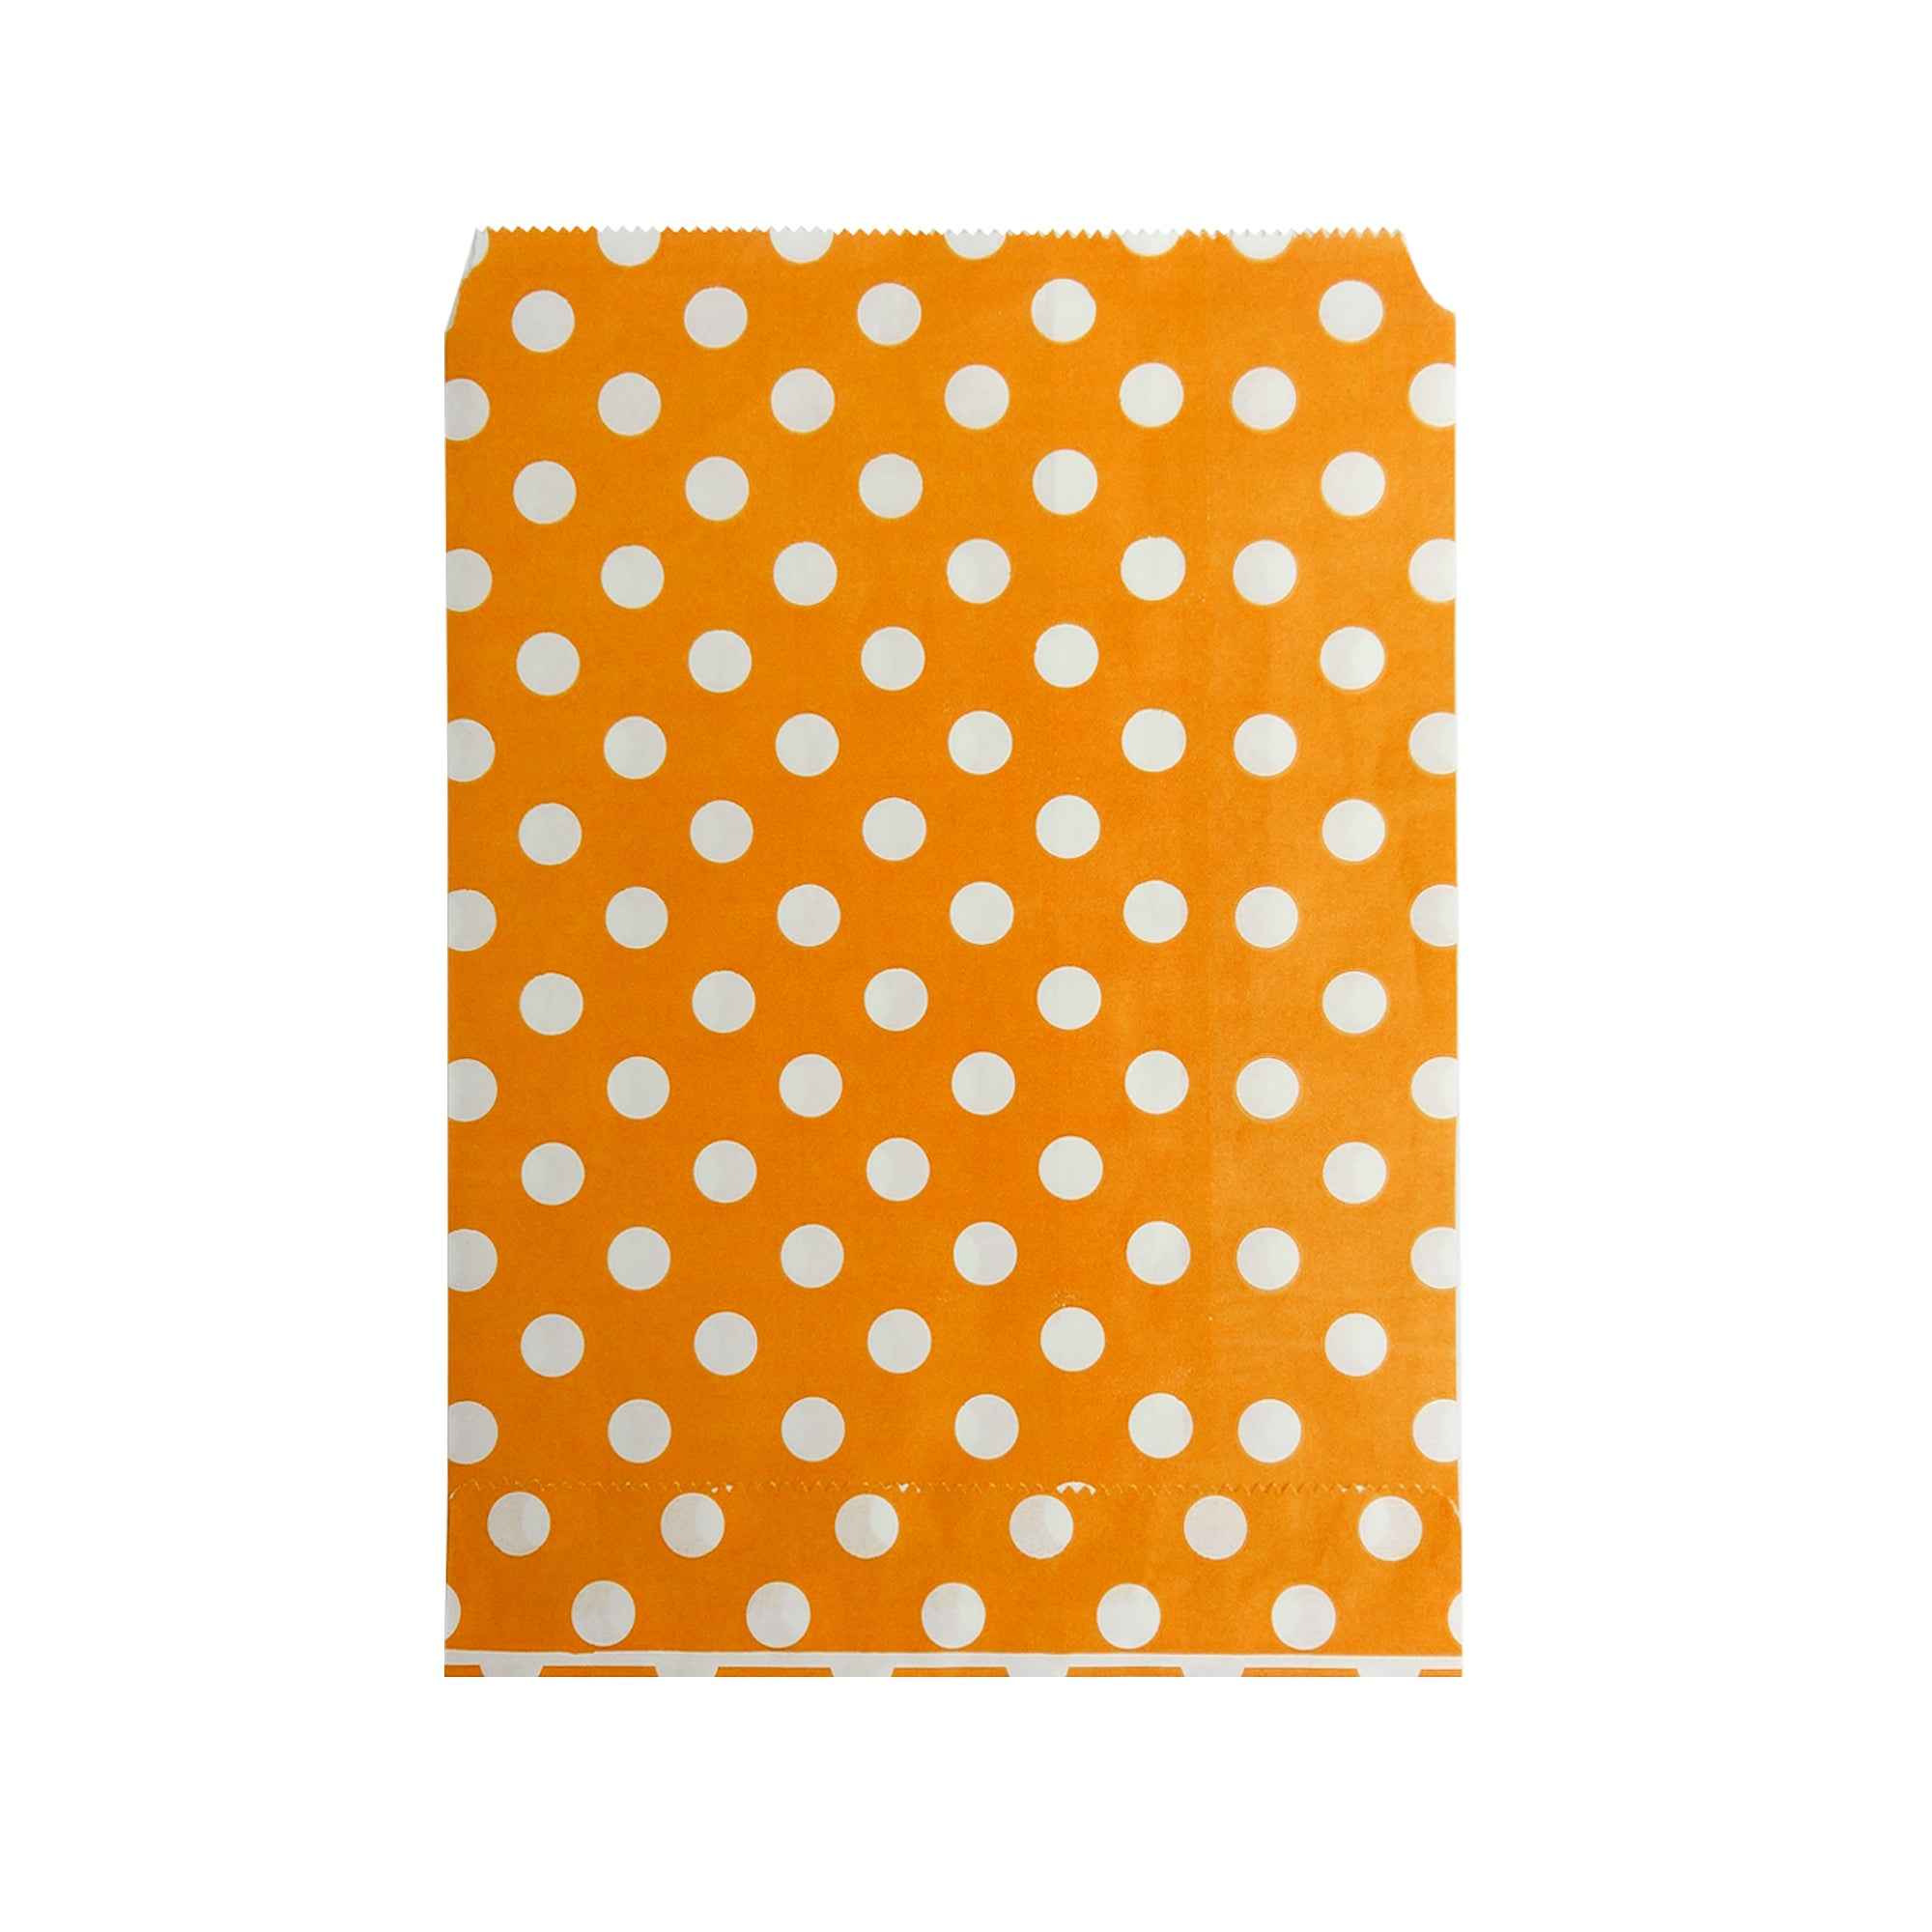 Big Orange Polka Paper Bag - 50 pcs